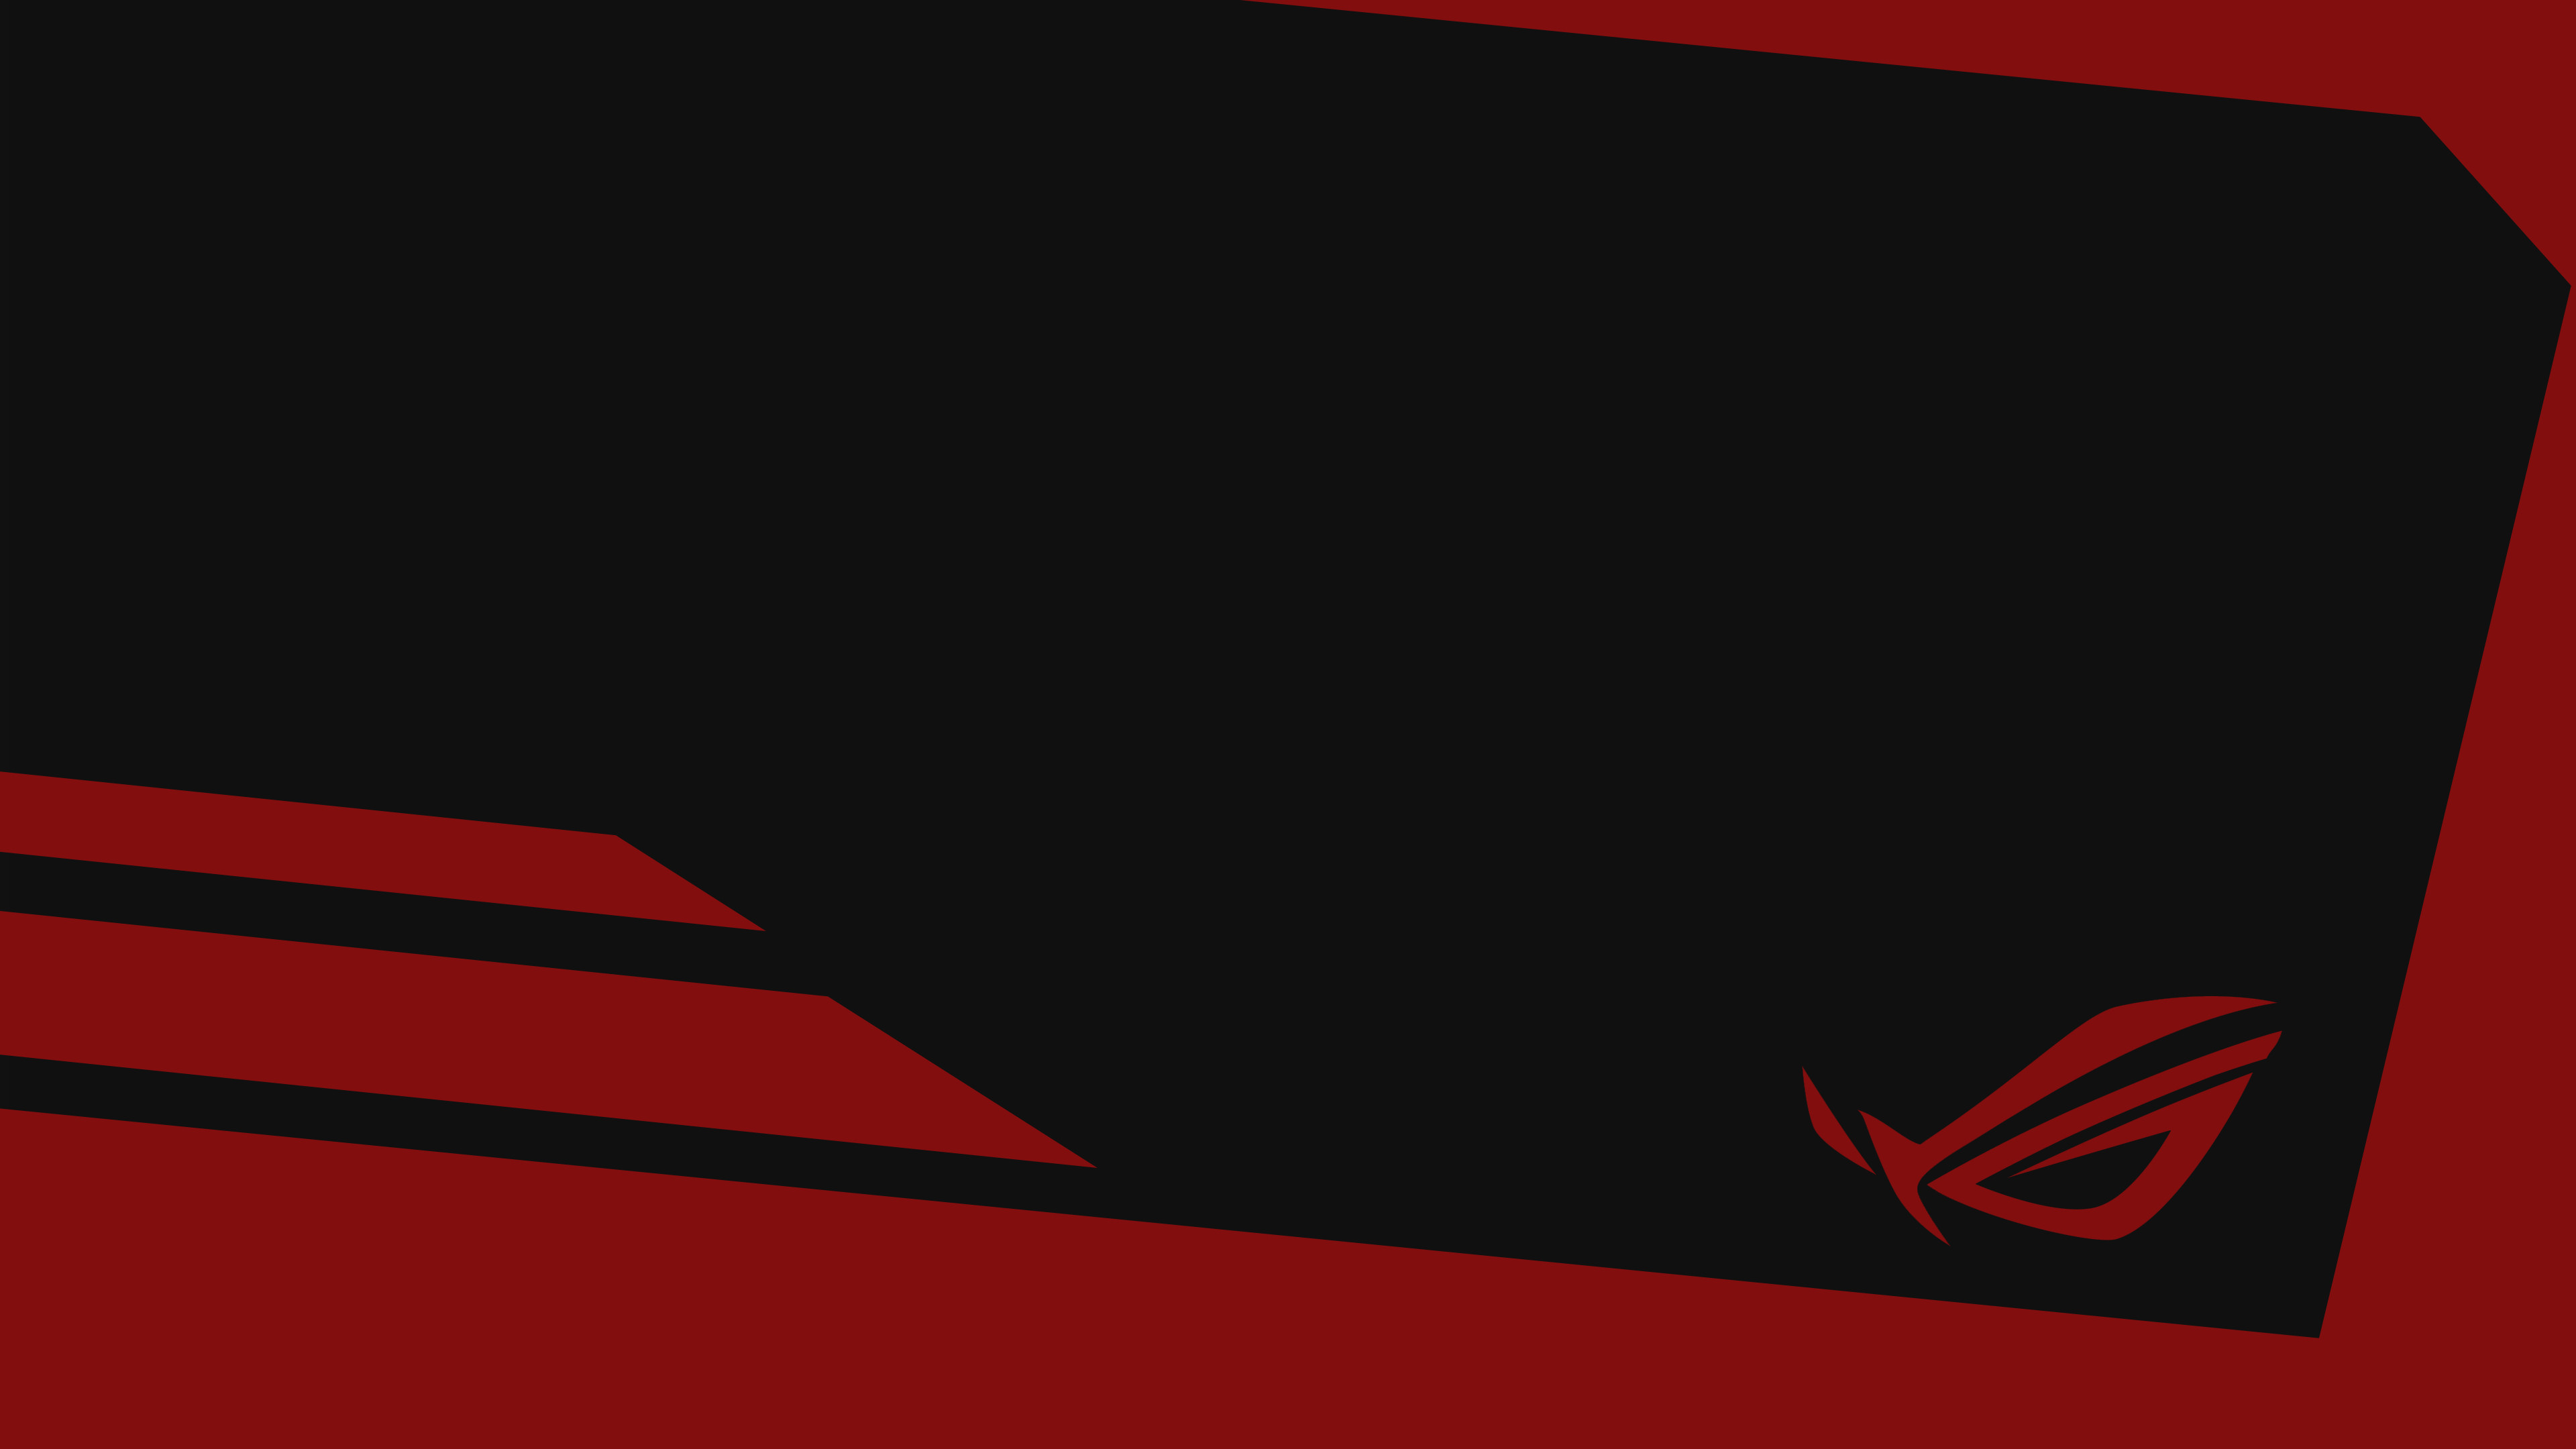 Red Asus Wallpaper: Asus Rog Wallpaper 1920x1080 (89+ Images